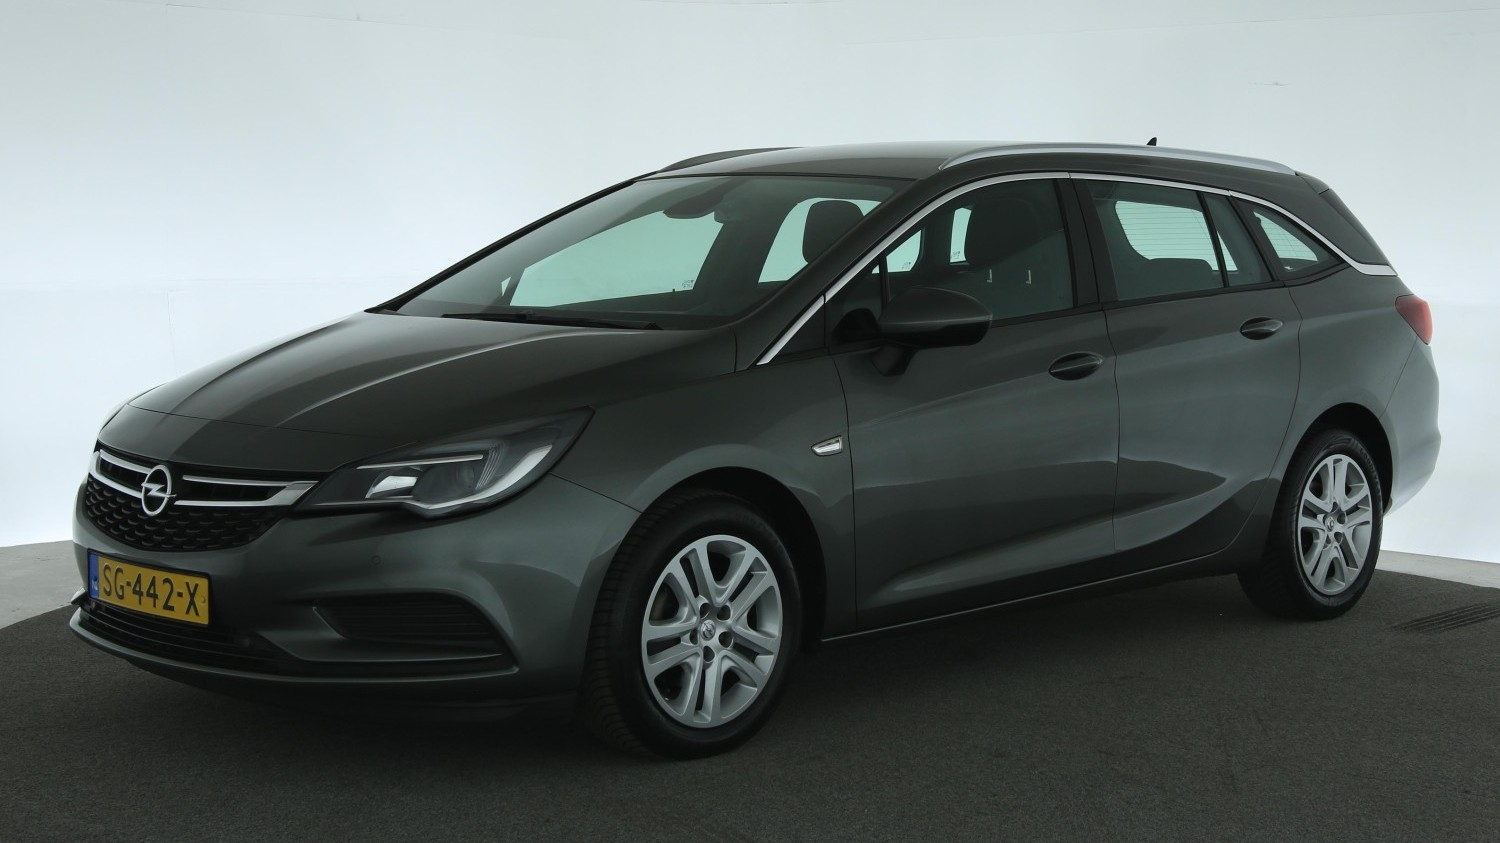 Opel Astra Station 2018 SG-442-X 1